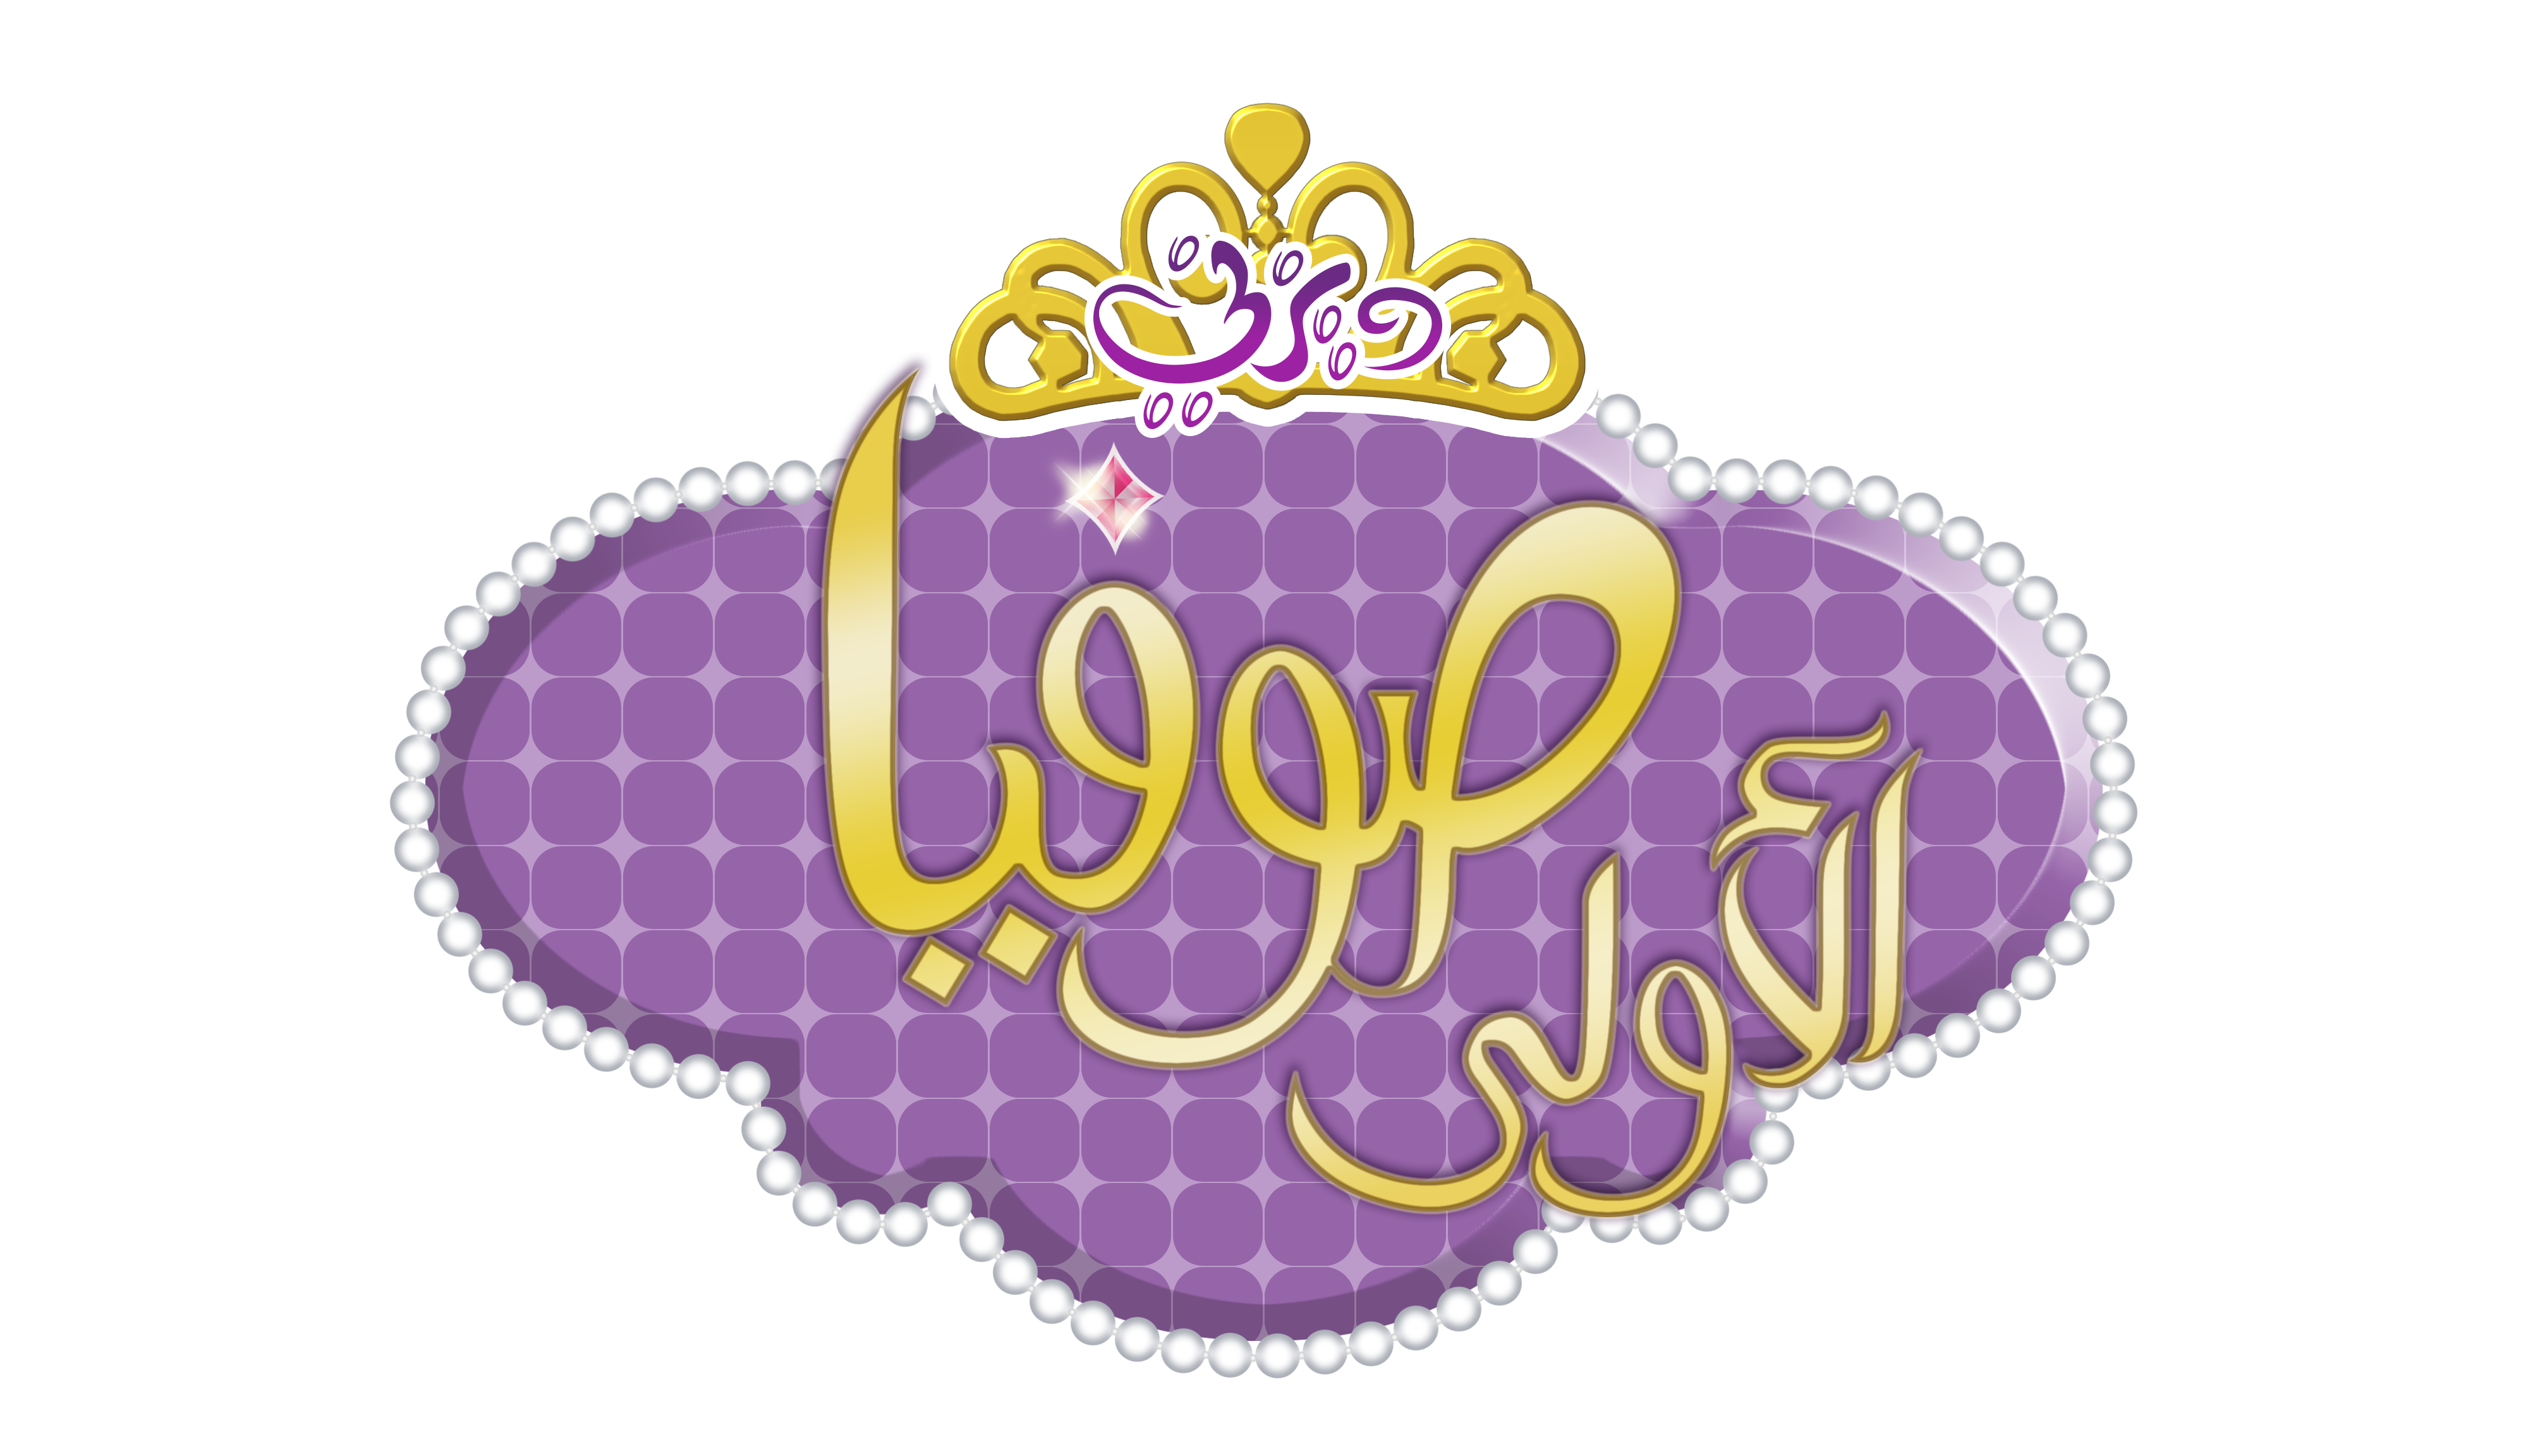 sofia the first arabic logo by Mohammedanis